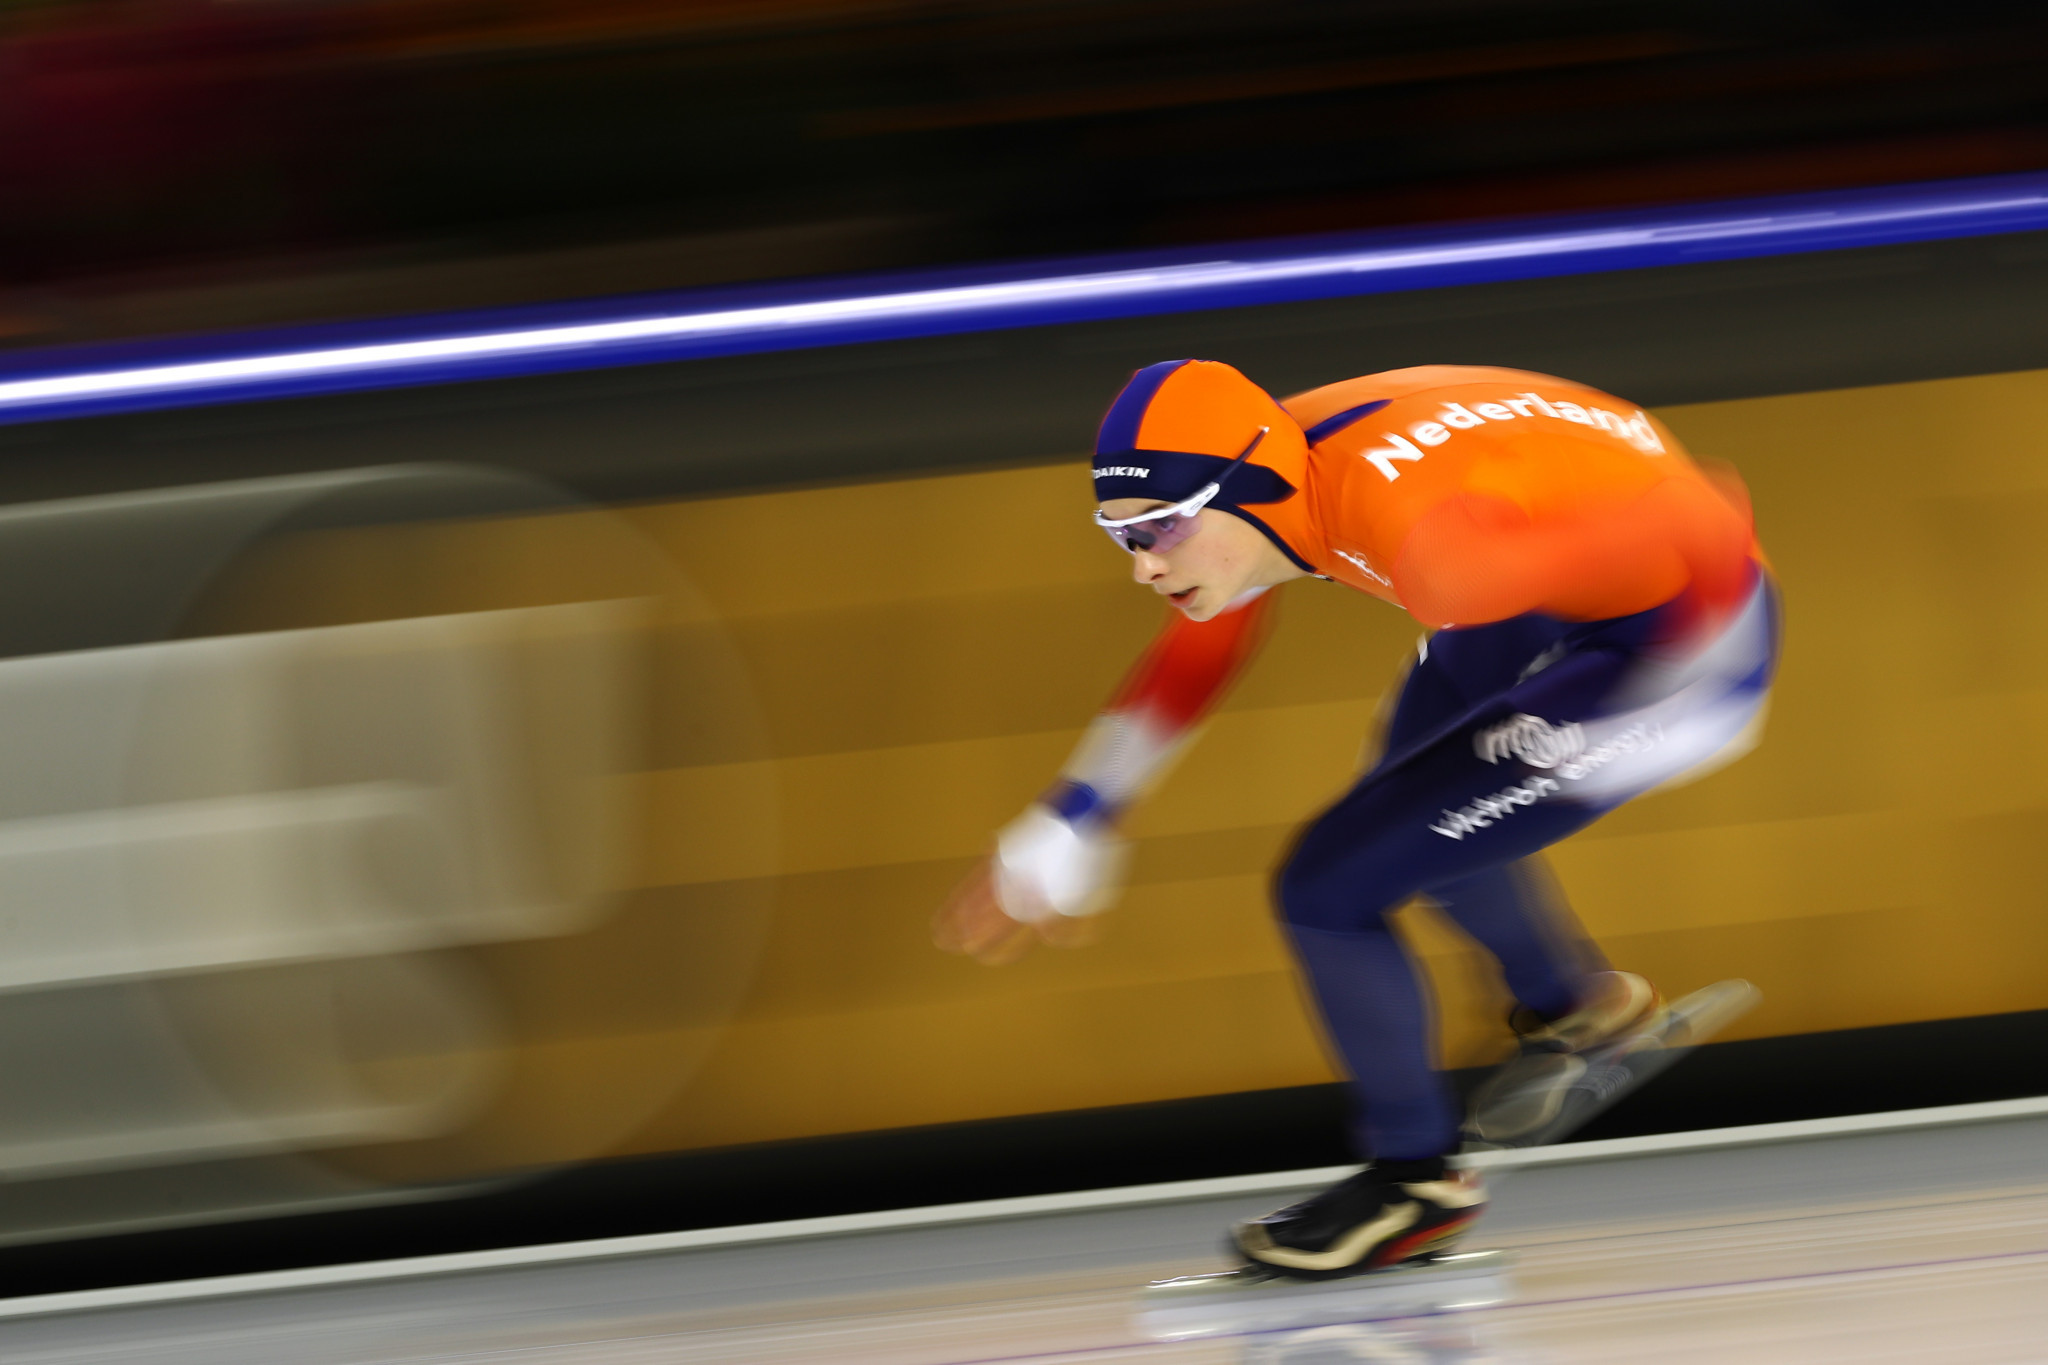 Netherlands score more medals on final day of ISU World Junior Speed Skating Championships